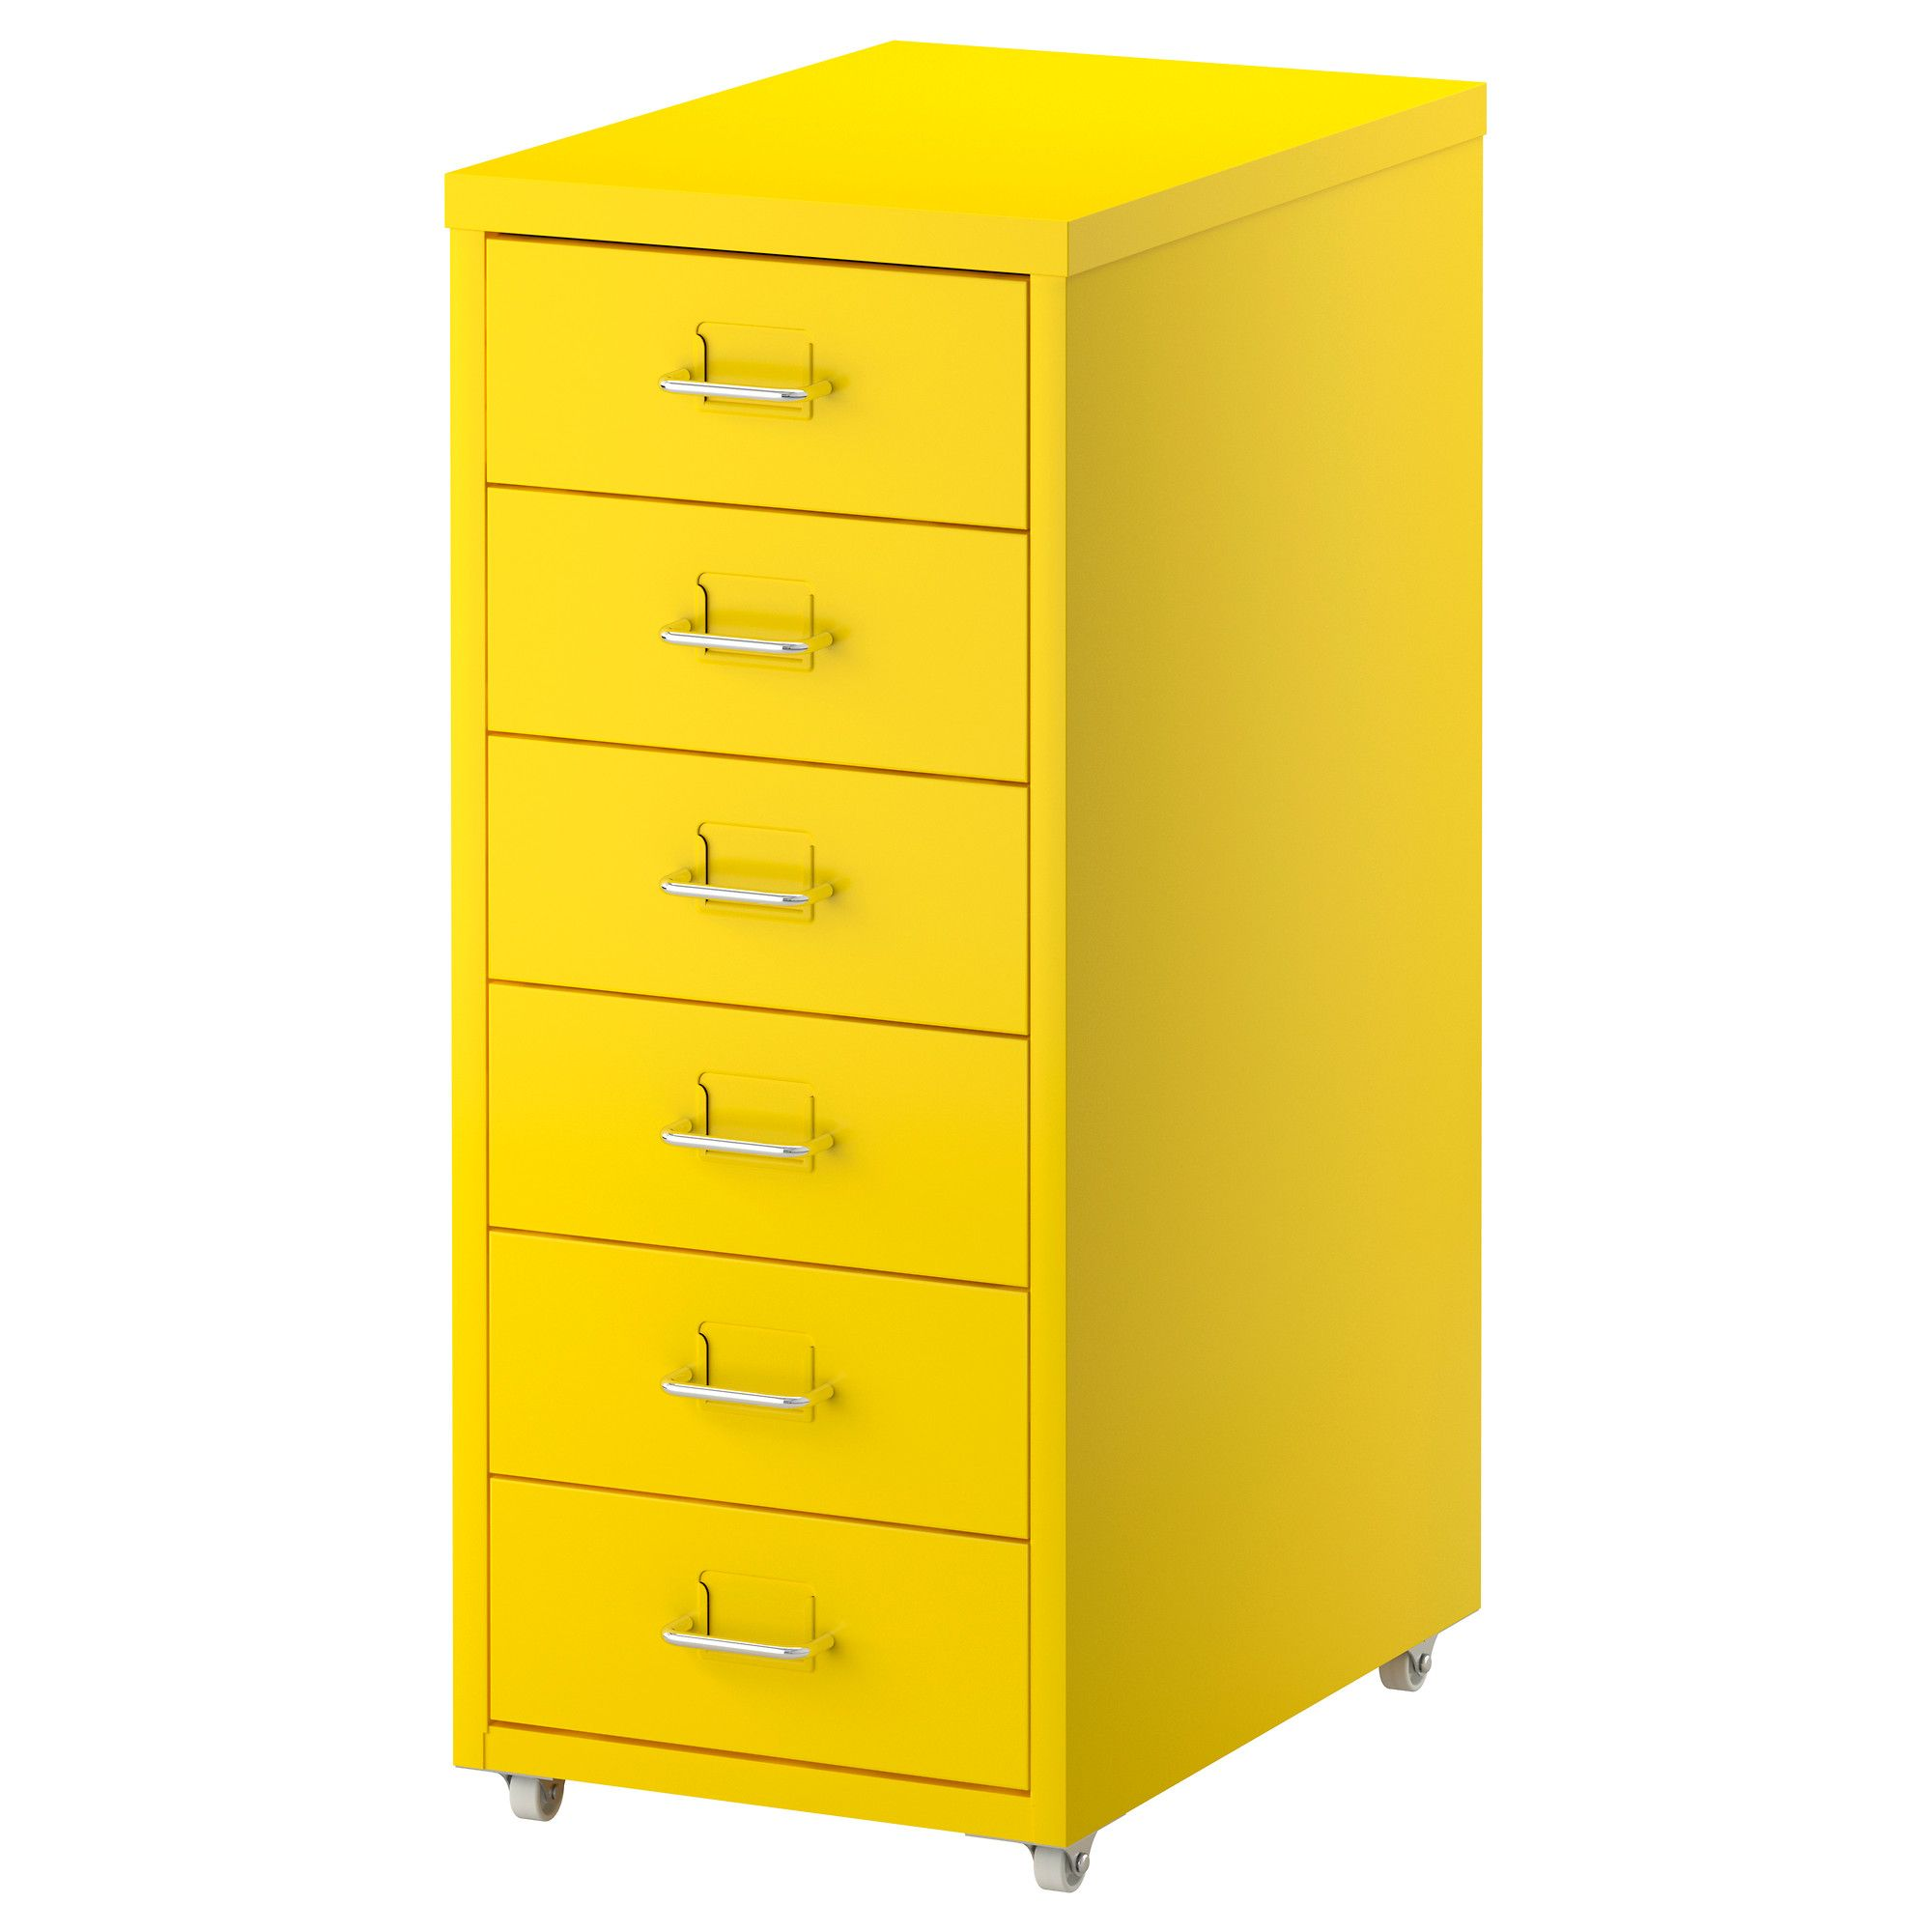 helmer drawer unit on casters yellow ikea width 11 depth 16 3 4 height 27 1 8 home. Black Bedroom Furniture Sets. Home Design Ideas